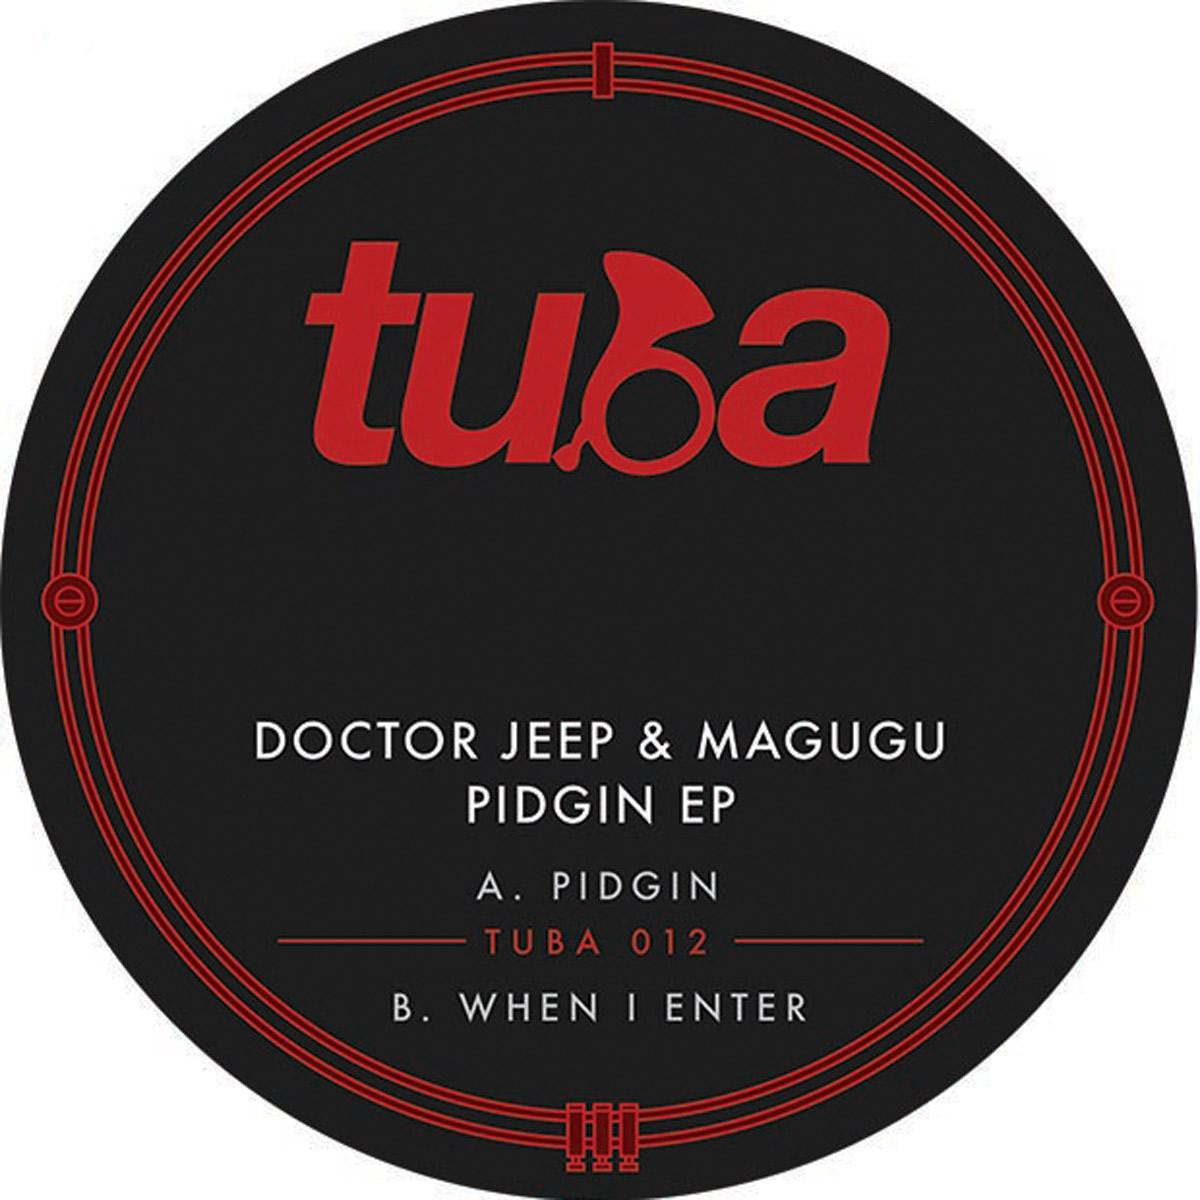 Doctor Jeep & Magugu - Pidgin EP